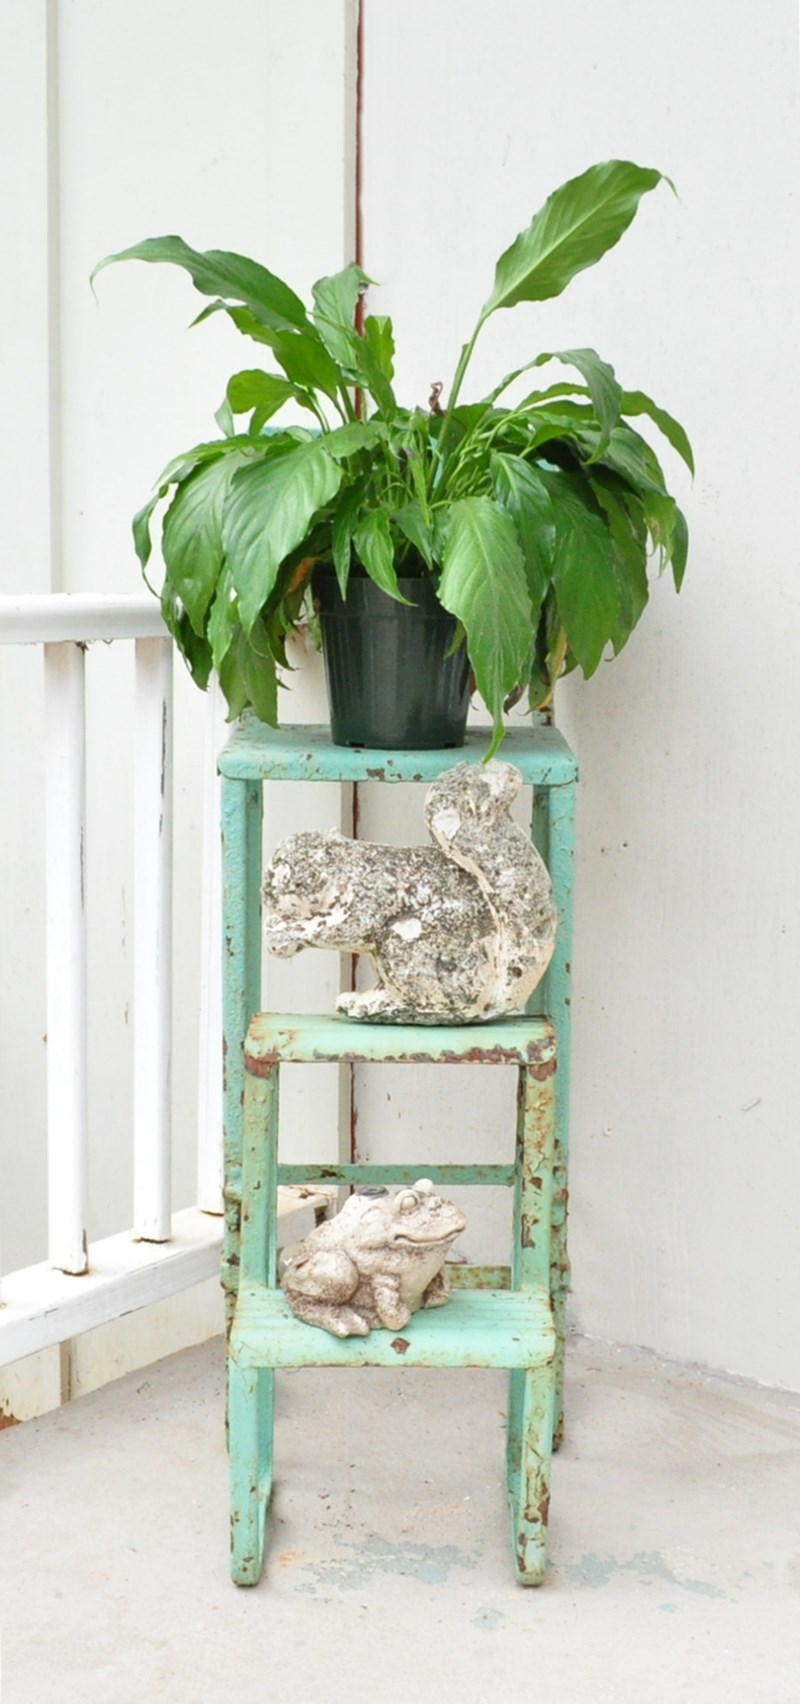 Vintage, aqua, step stool used as a plant stand with a concrete squirrel and a concrete, frog sprinkler as accents.